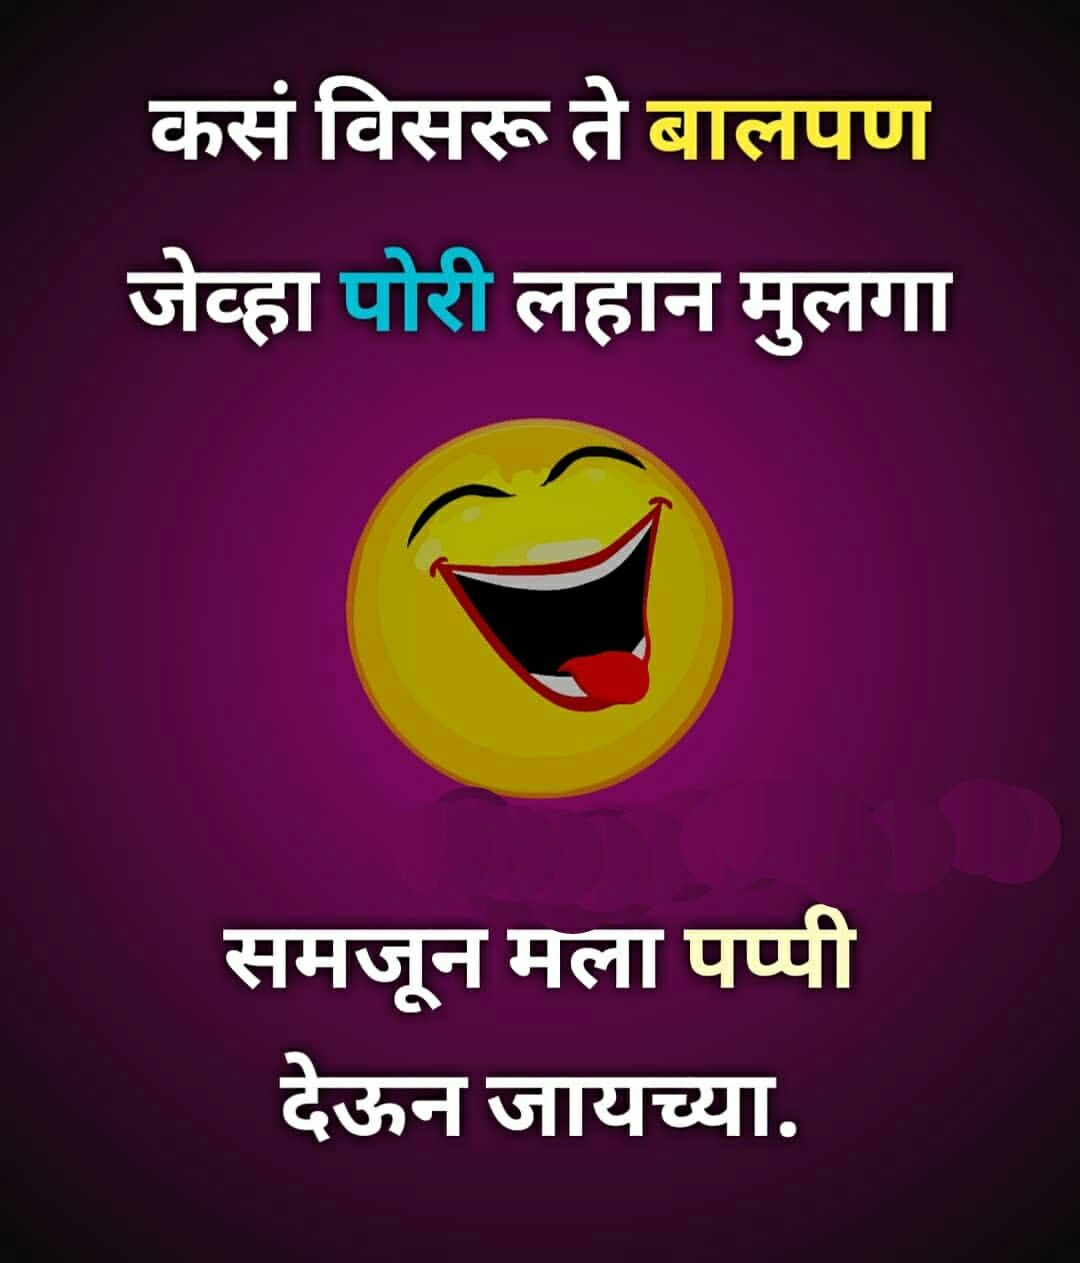 Pin By Mayur Kamble On Marathi Dhamal Funny Texts Attitude Quotes Marathi Quotes